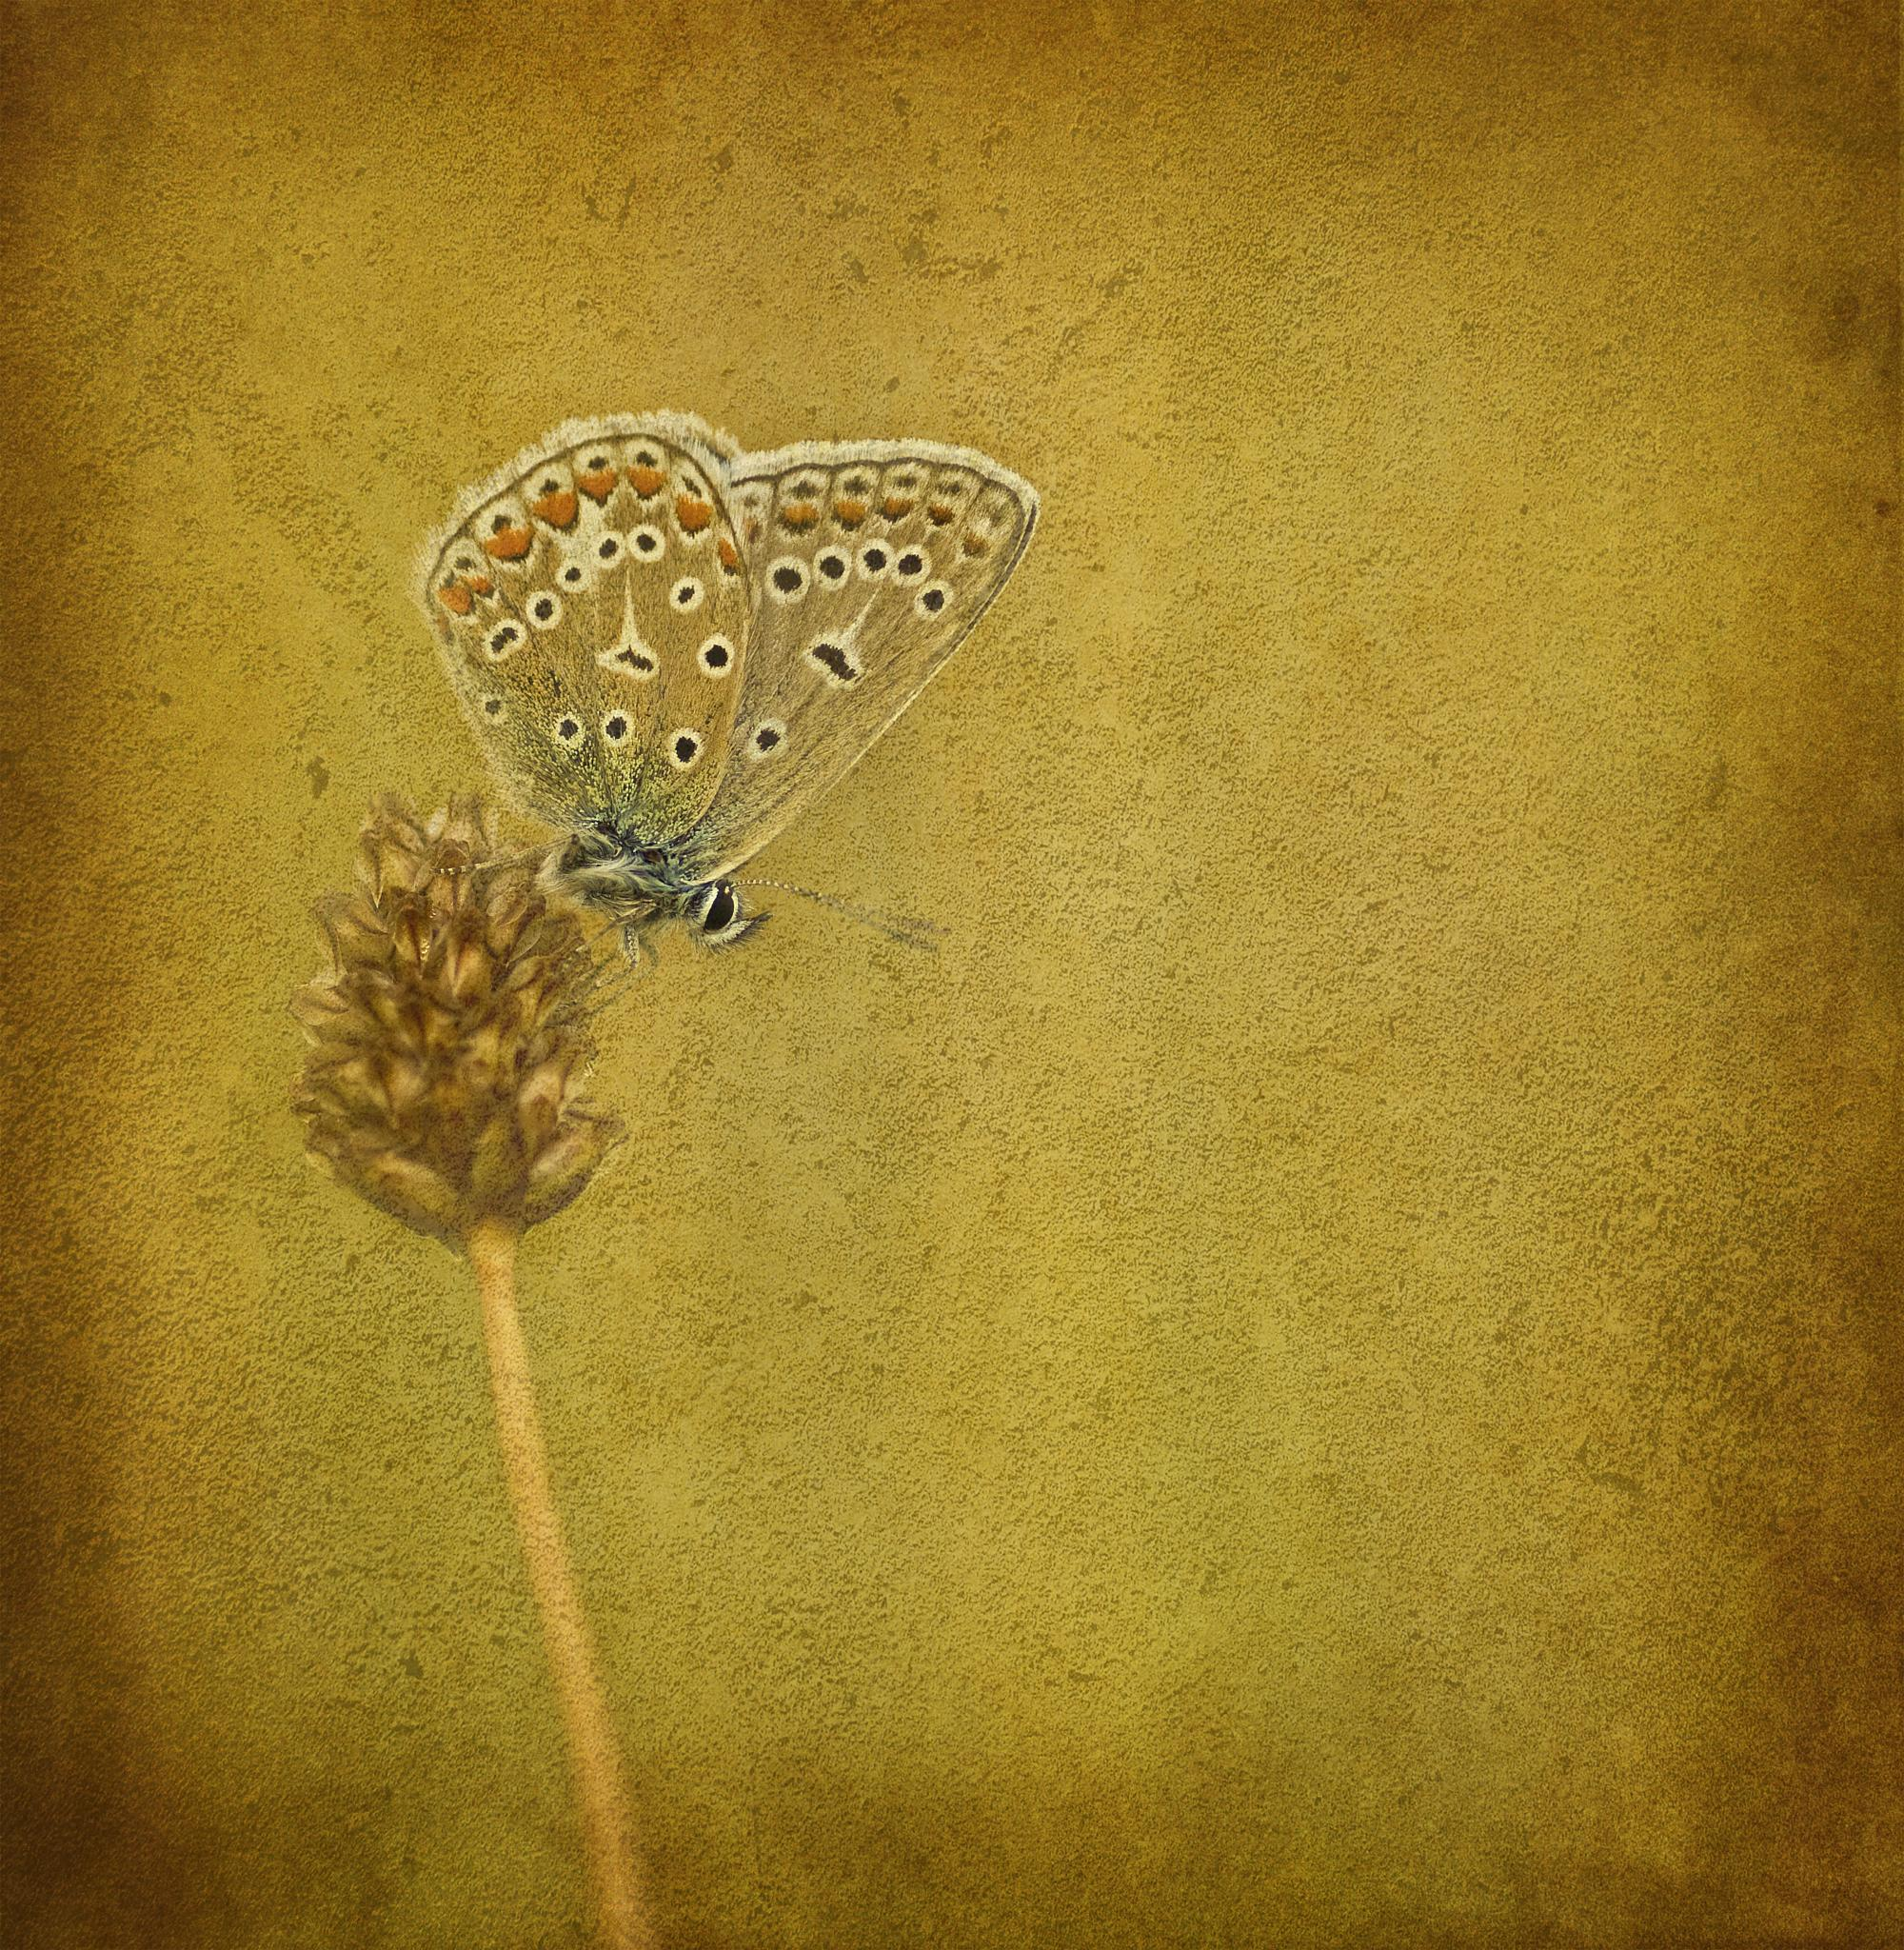 Butterfly by Peter Samuelsson